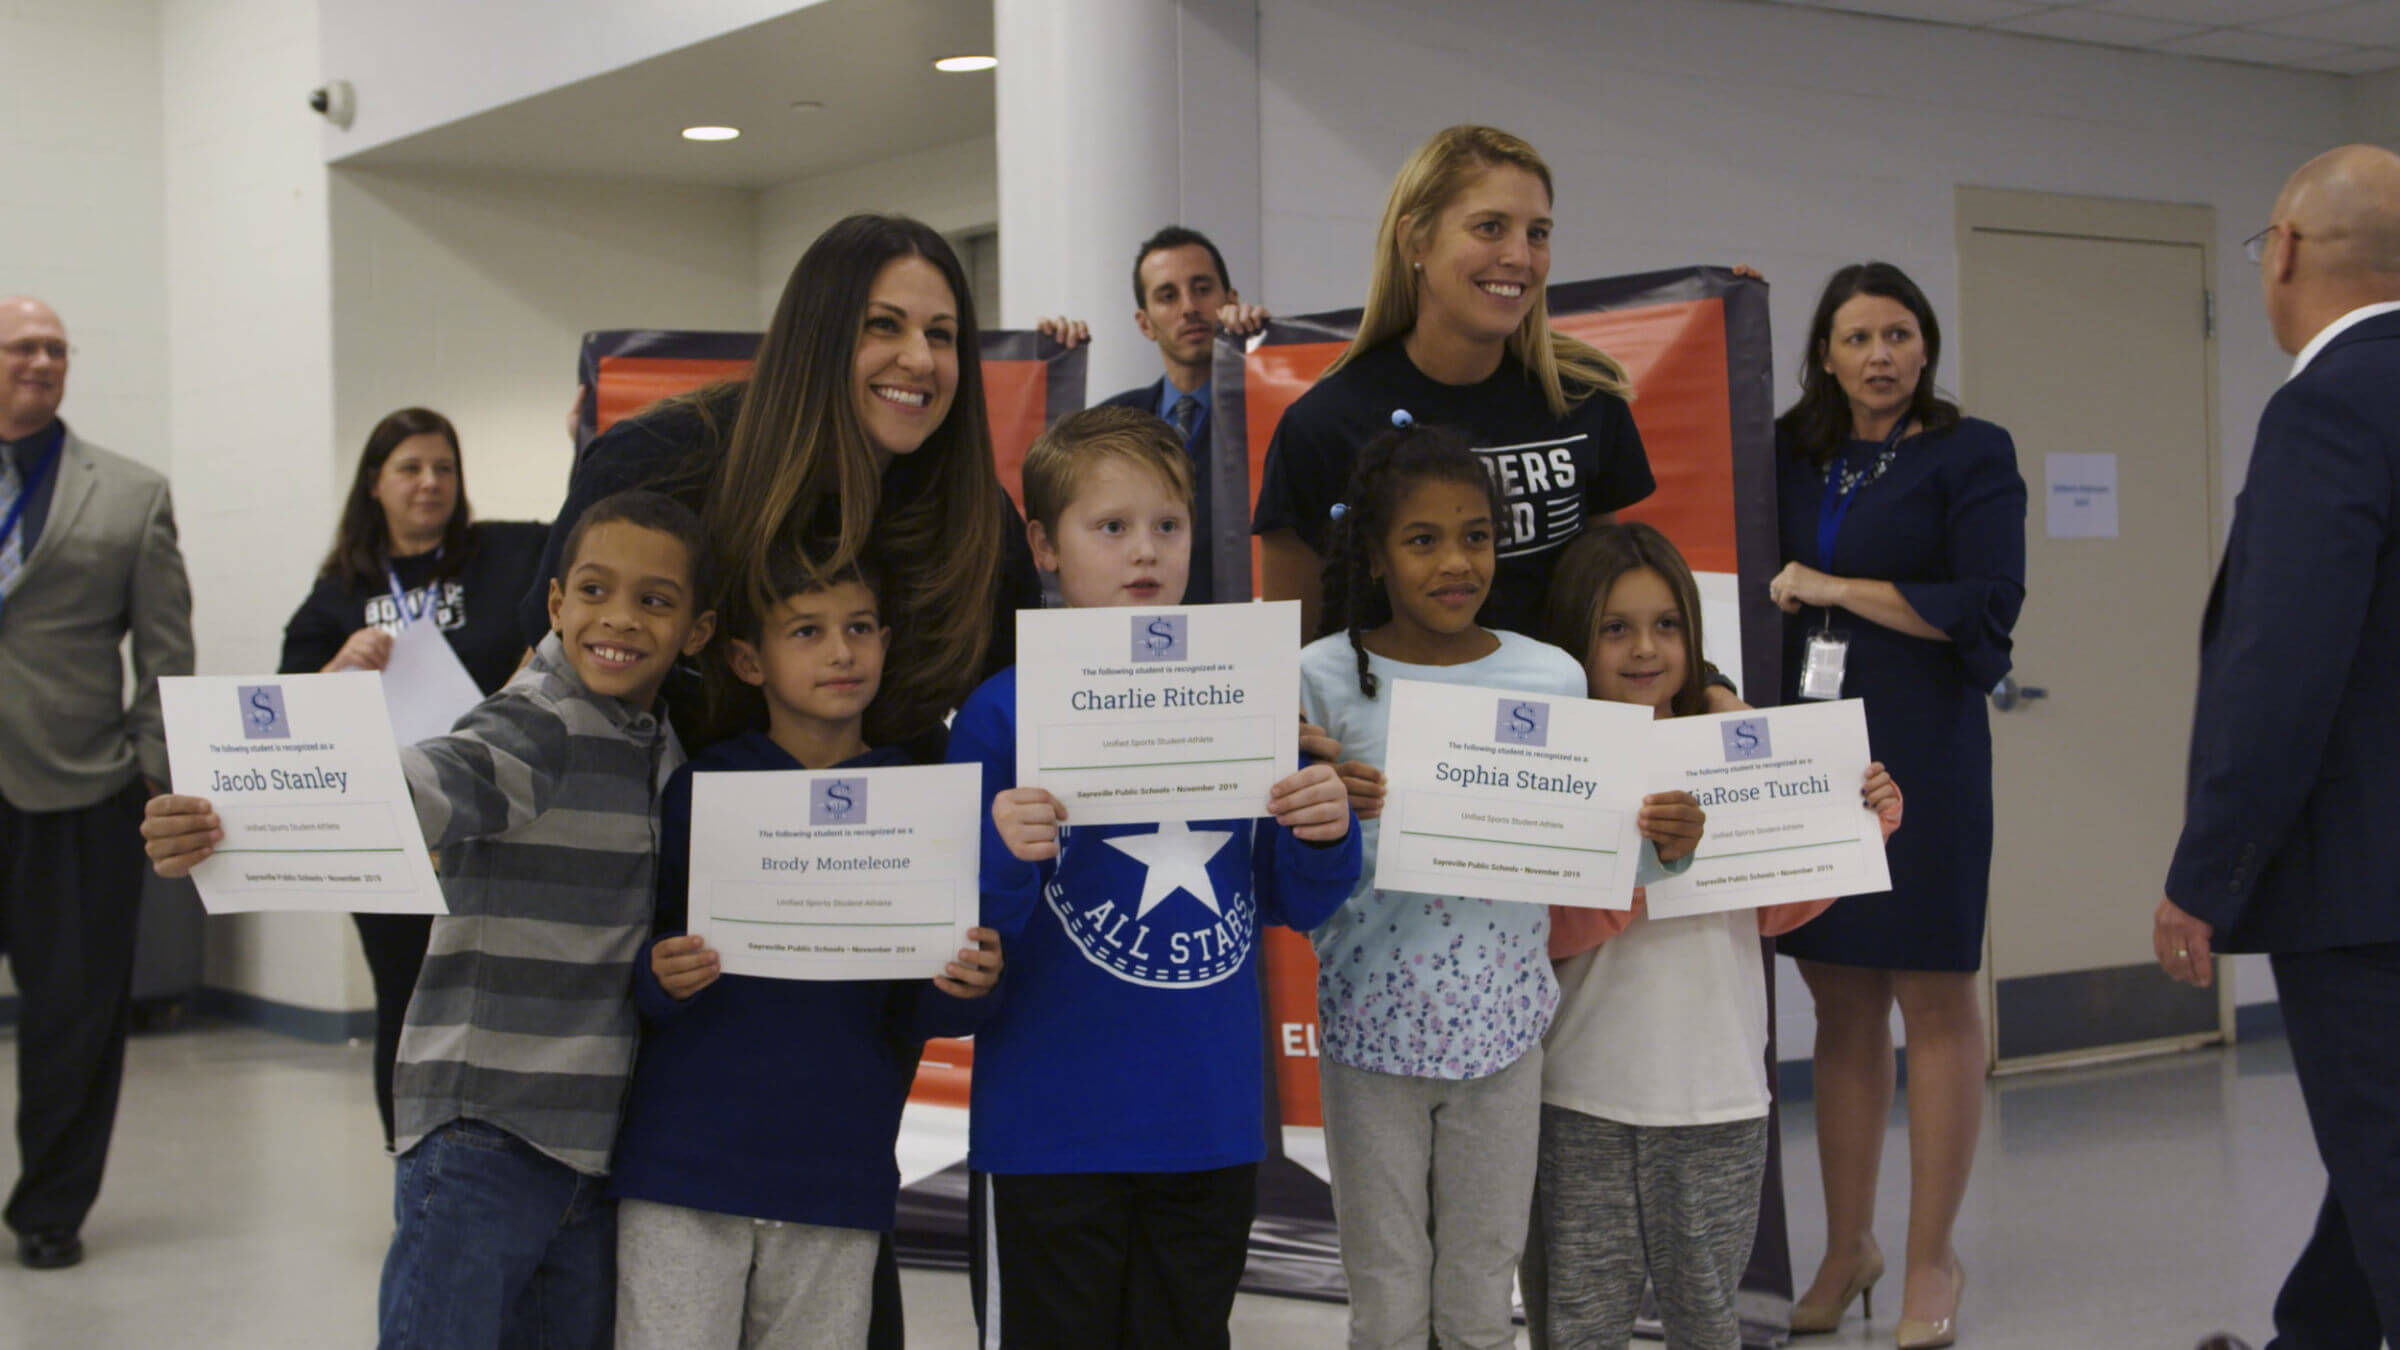 A group of students holding their certificates with two teachers standing behind them.